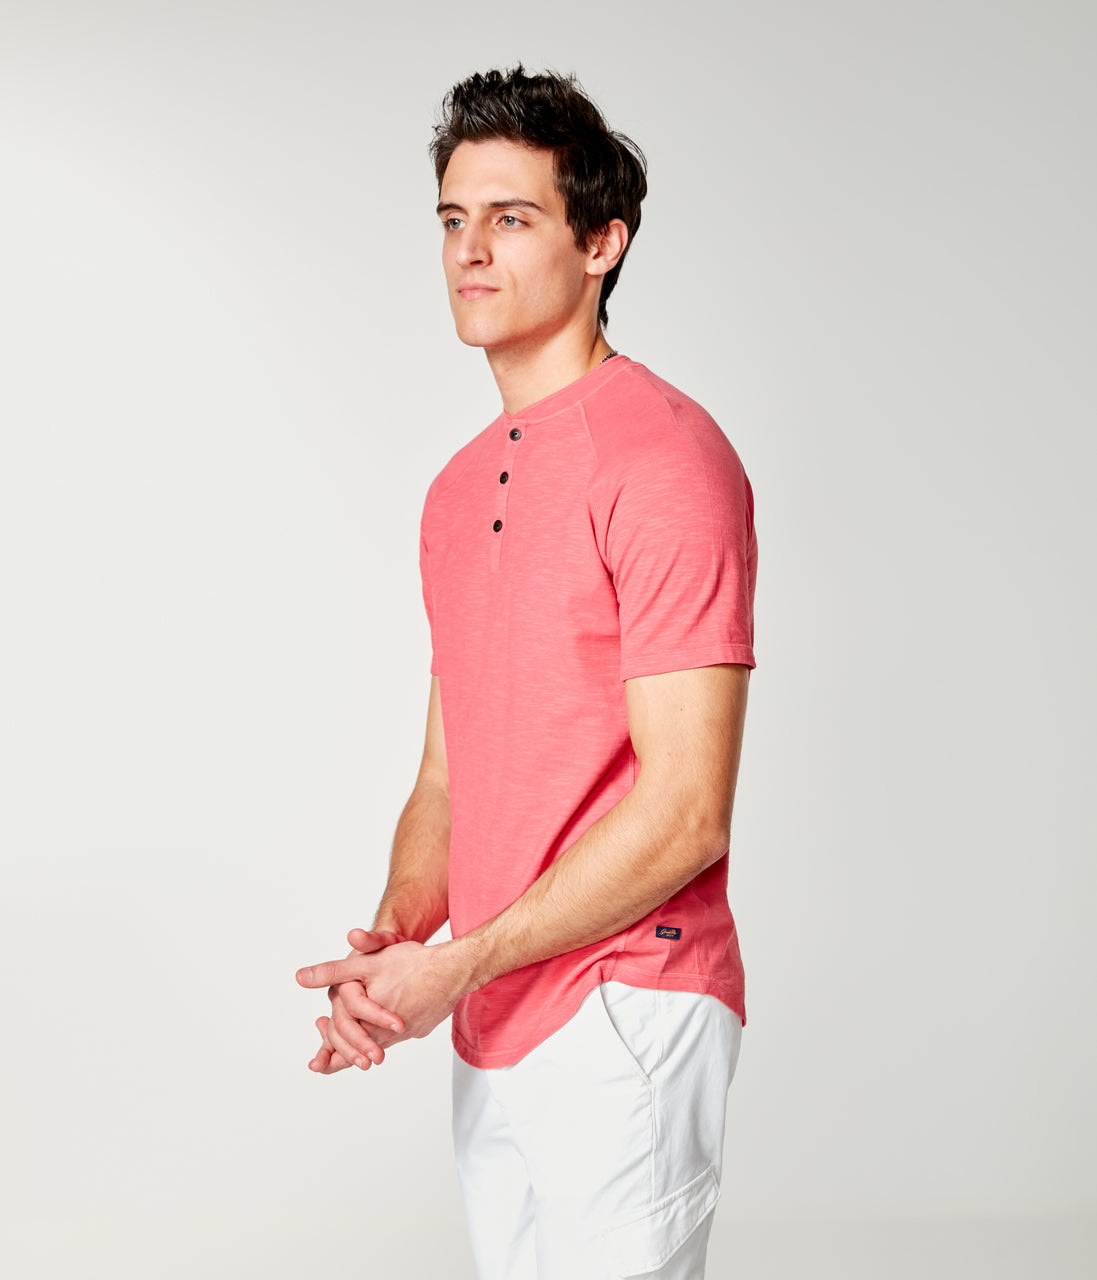 Soft Slub Jersey Legend Henley - Watermelon - Good Man Brand - Soft Slub Jersey Legend Henley - Watermelon